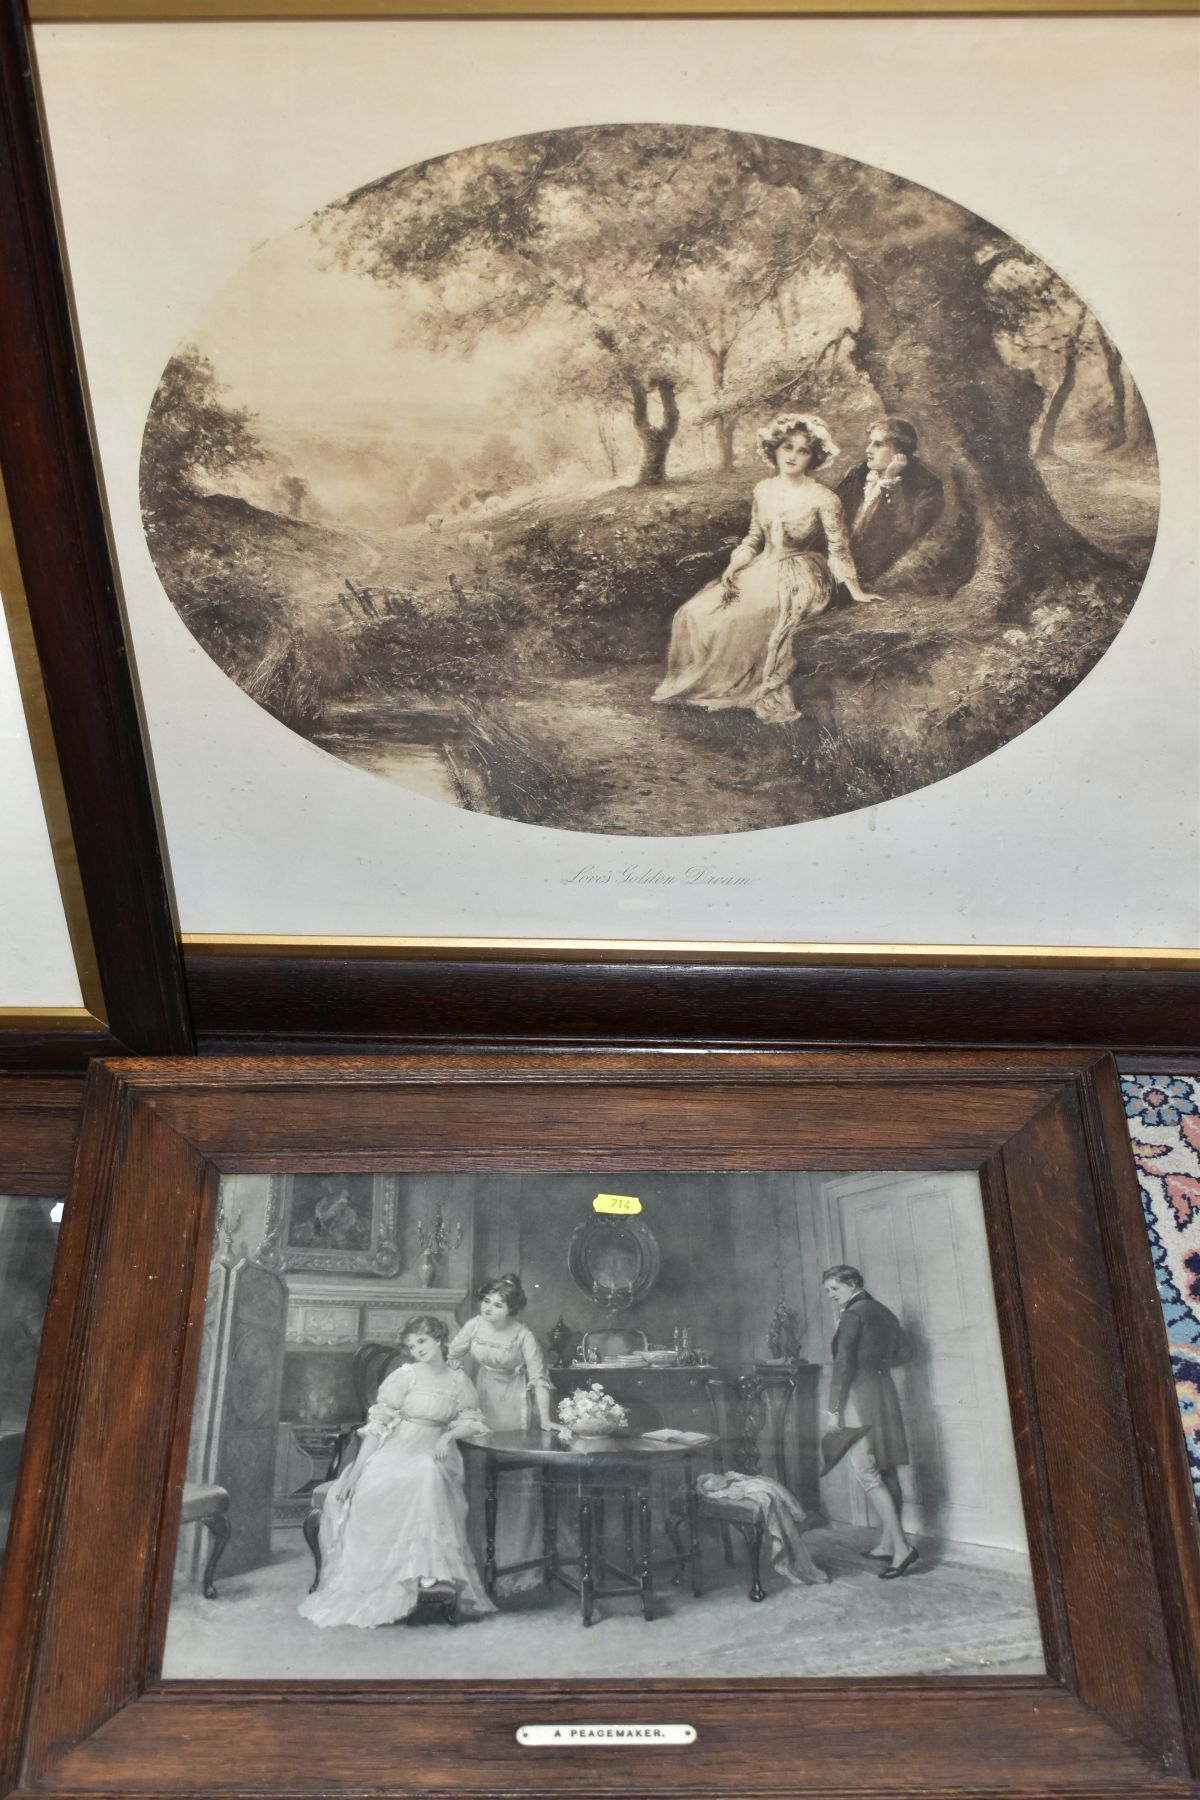 EARLY 20TH CENTURY OAK FRAMED MONOCHROME PRINTS, comprising 'For King and Country' by Graham - Image 2 of 4